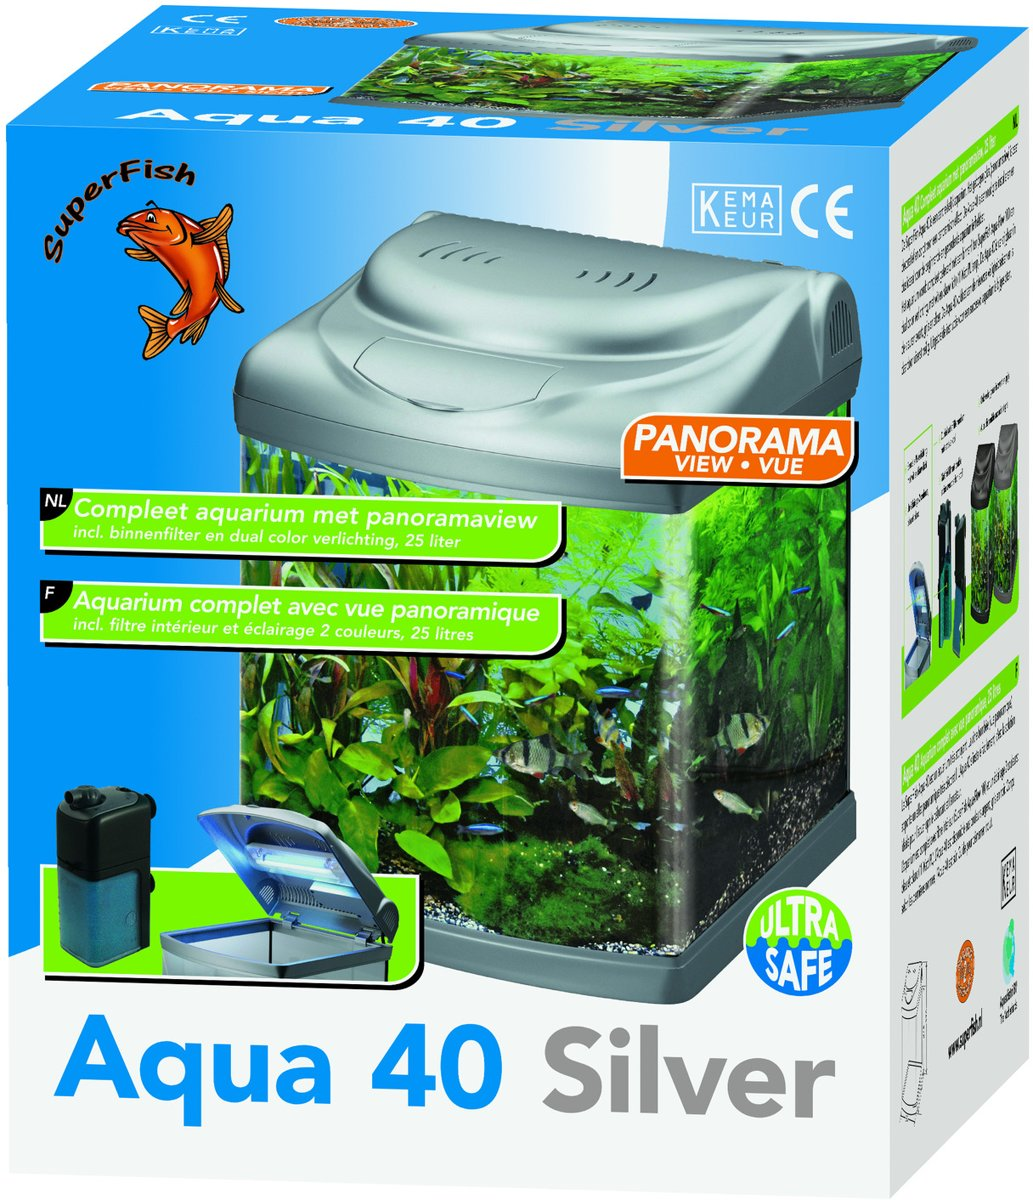 11w Tropical Duo Verlichting Bol Superfish Aquarium Superfish Aquarium Aqua Panorama 40 Zi